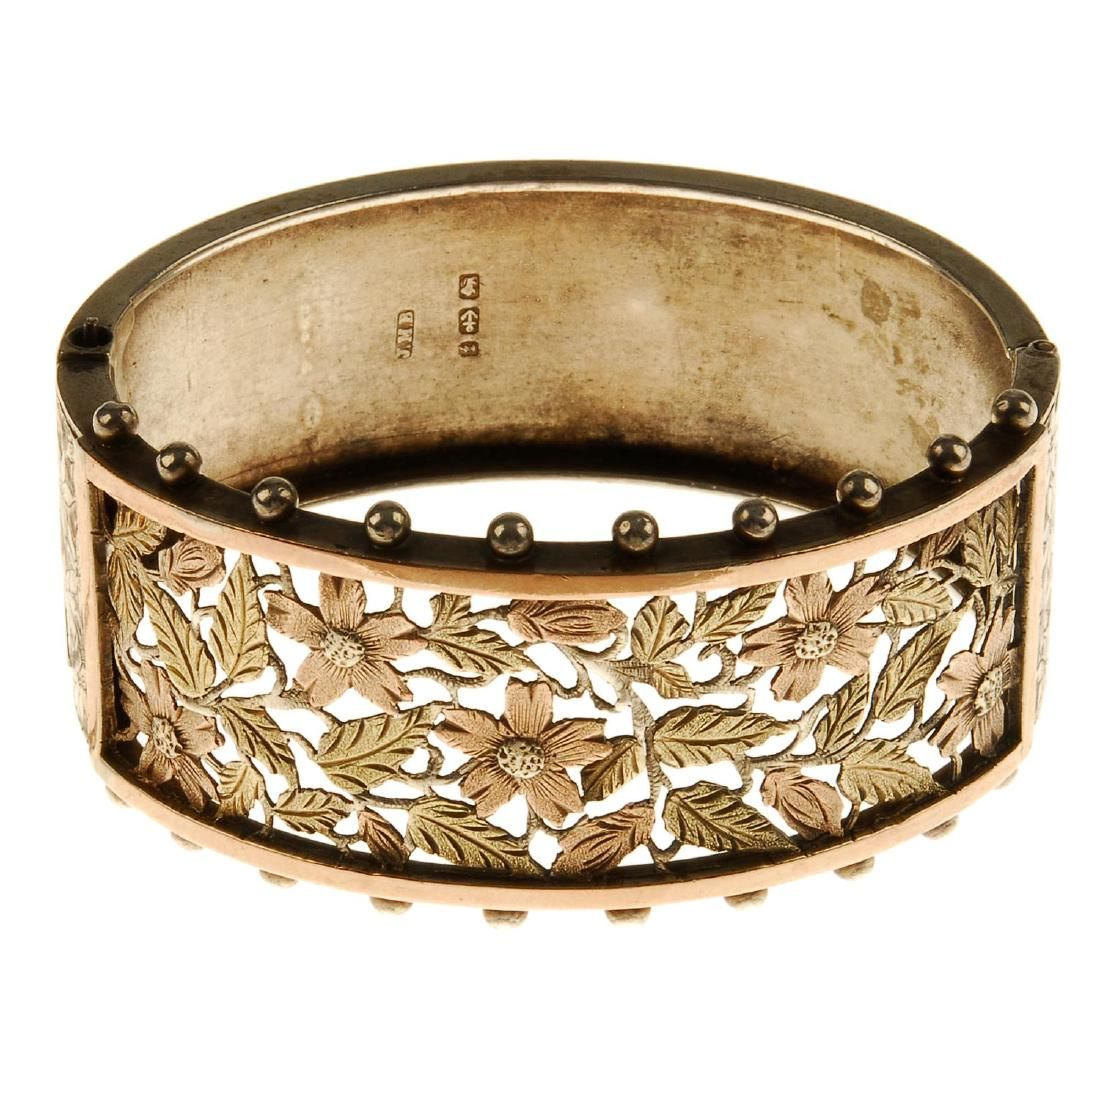 A late Victorian silver hinged bangle. The openwork